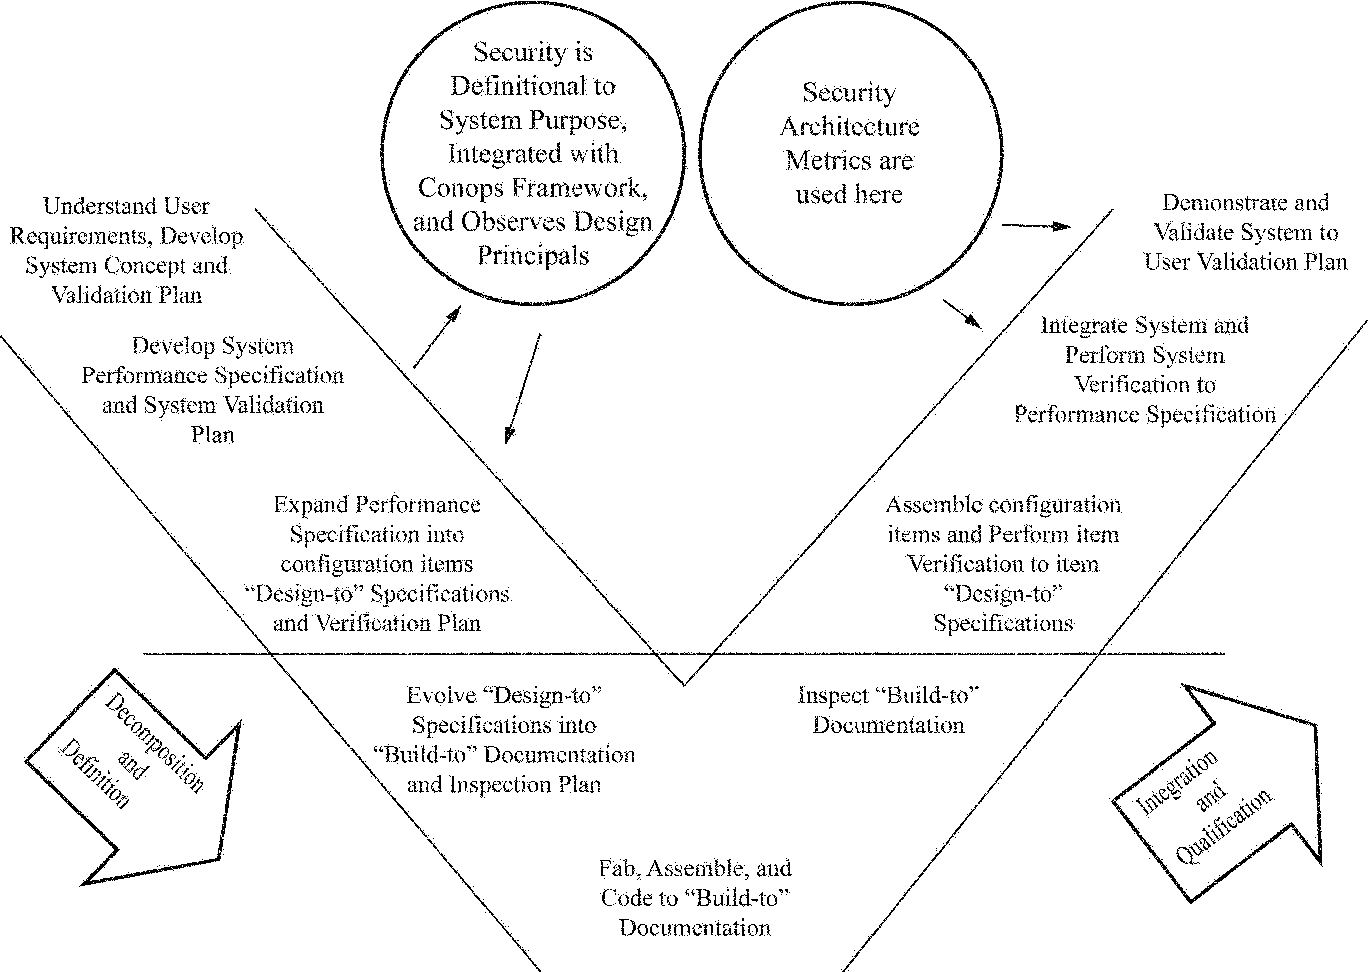 An Architectural Systems Engineering Methodology For Addressing Diagram Cyber Security Semantic Scholar